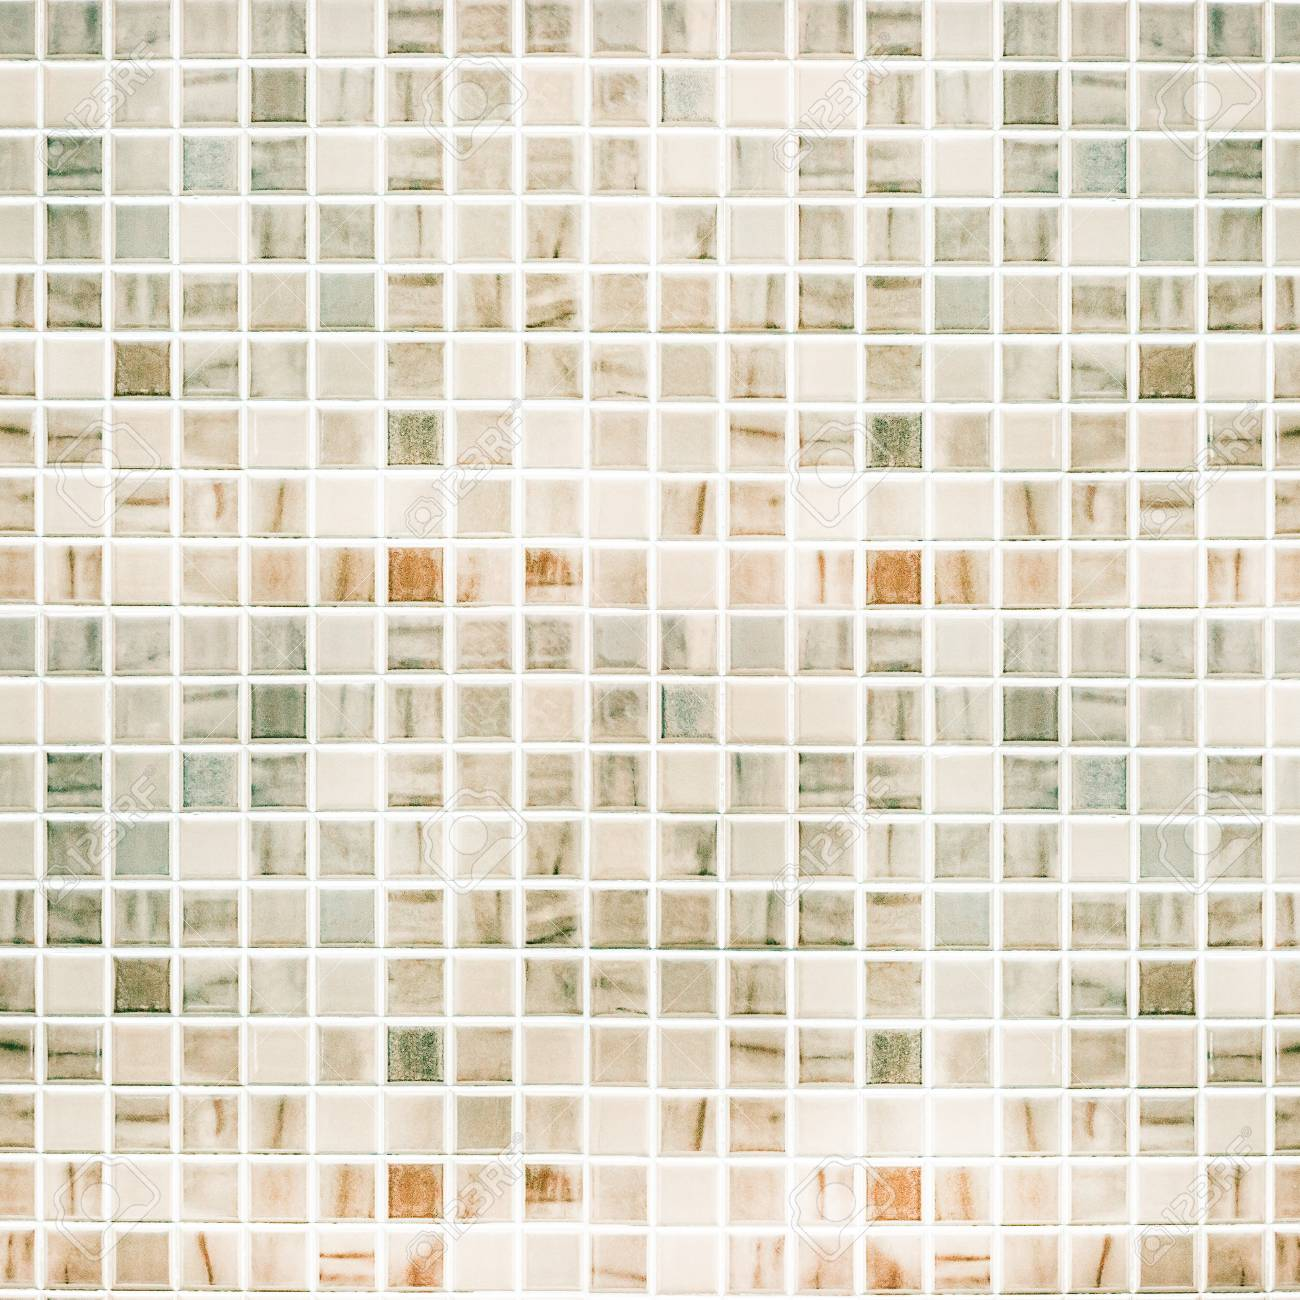 Ceramic Tile Wall Texture Background Home Design Bathroom Wall Stock Photo Picture And Royalty Free Image Image 85084769